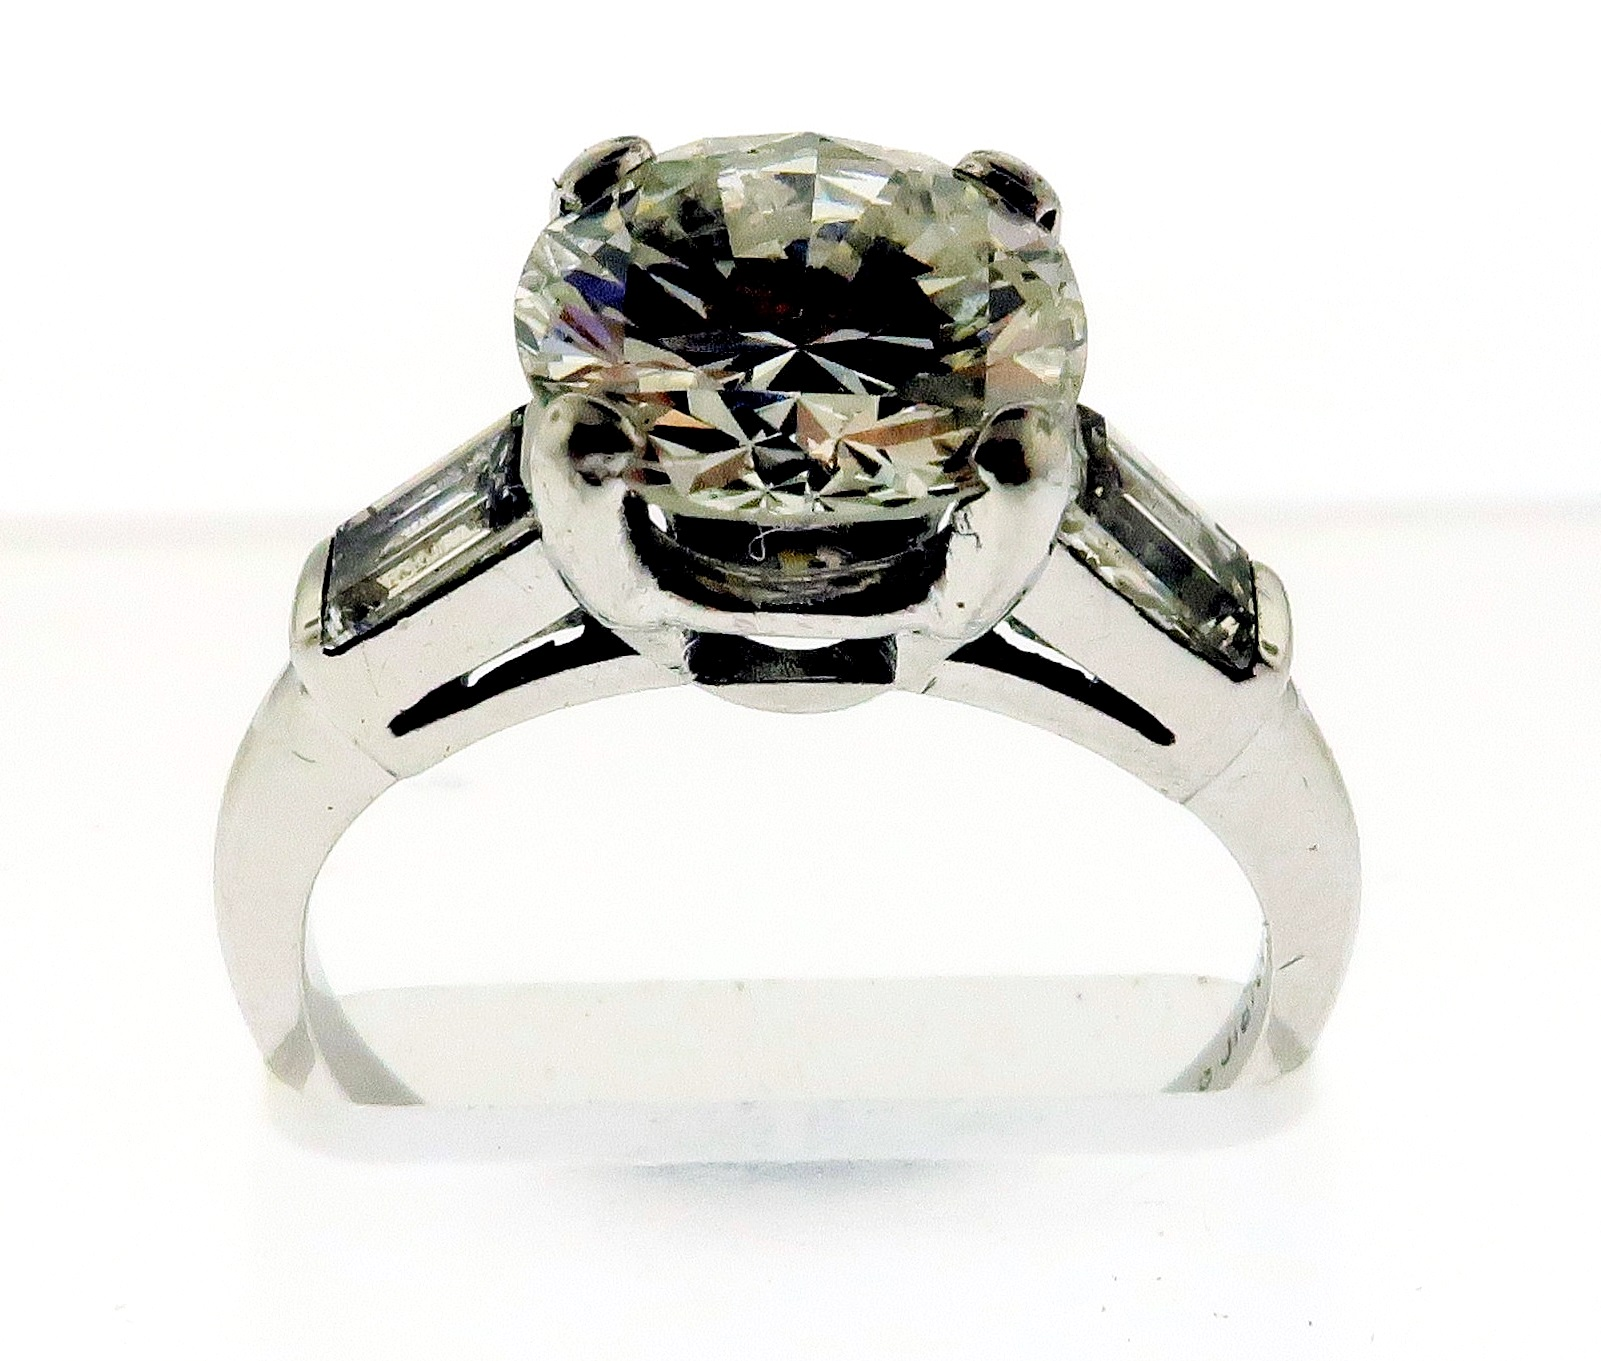 2 Carat Diamond Ring In Platinum Setting. Sold For $4,000